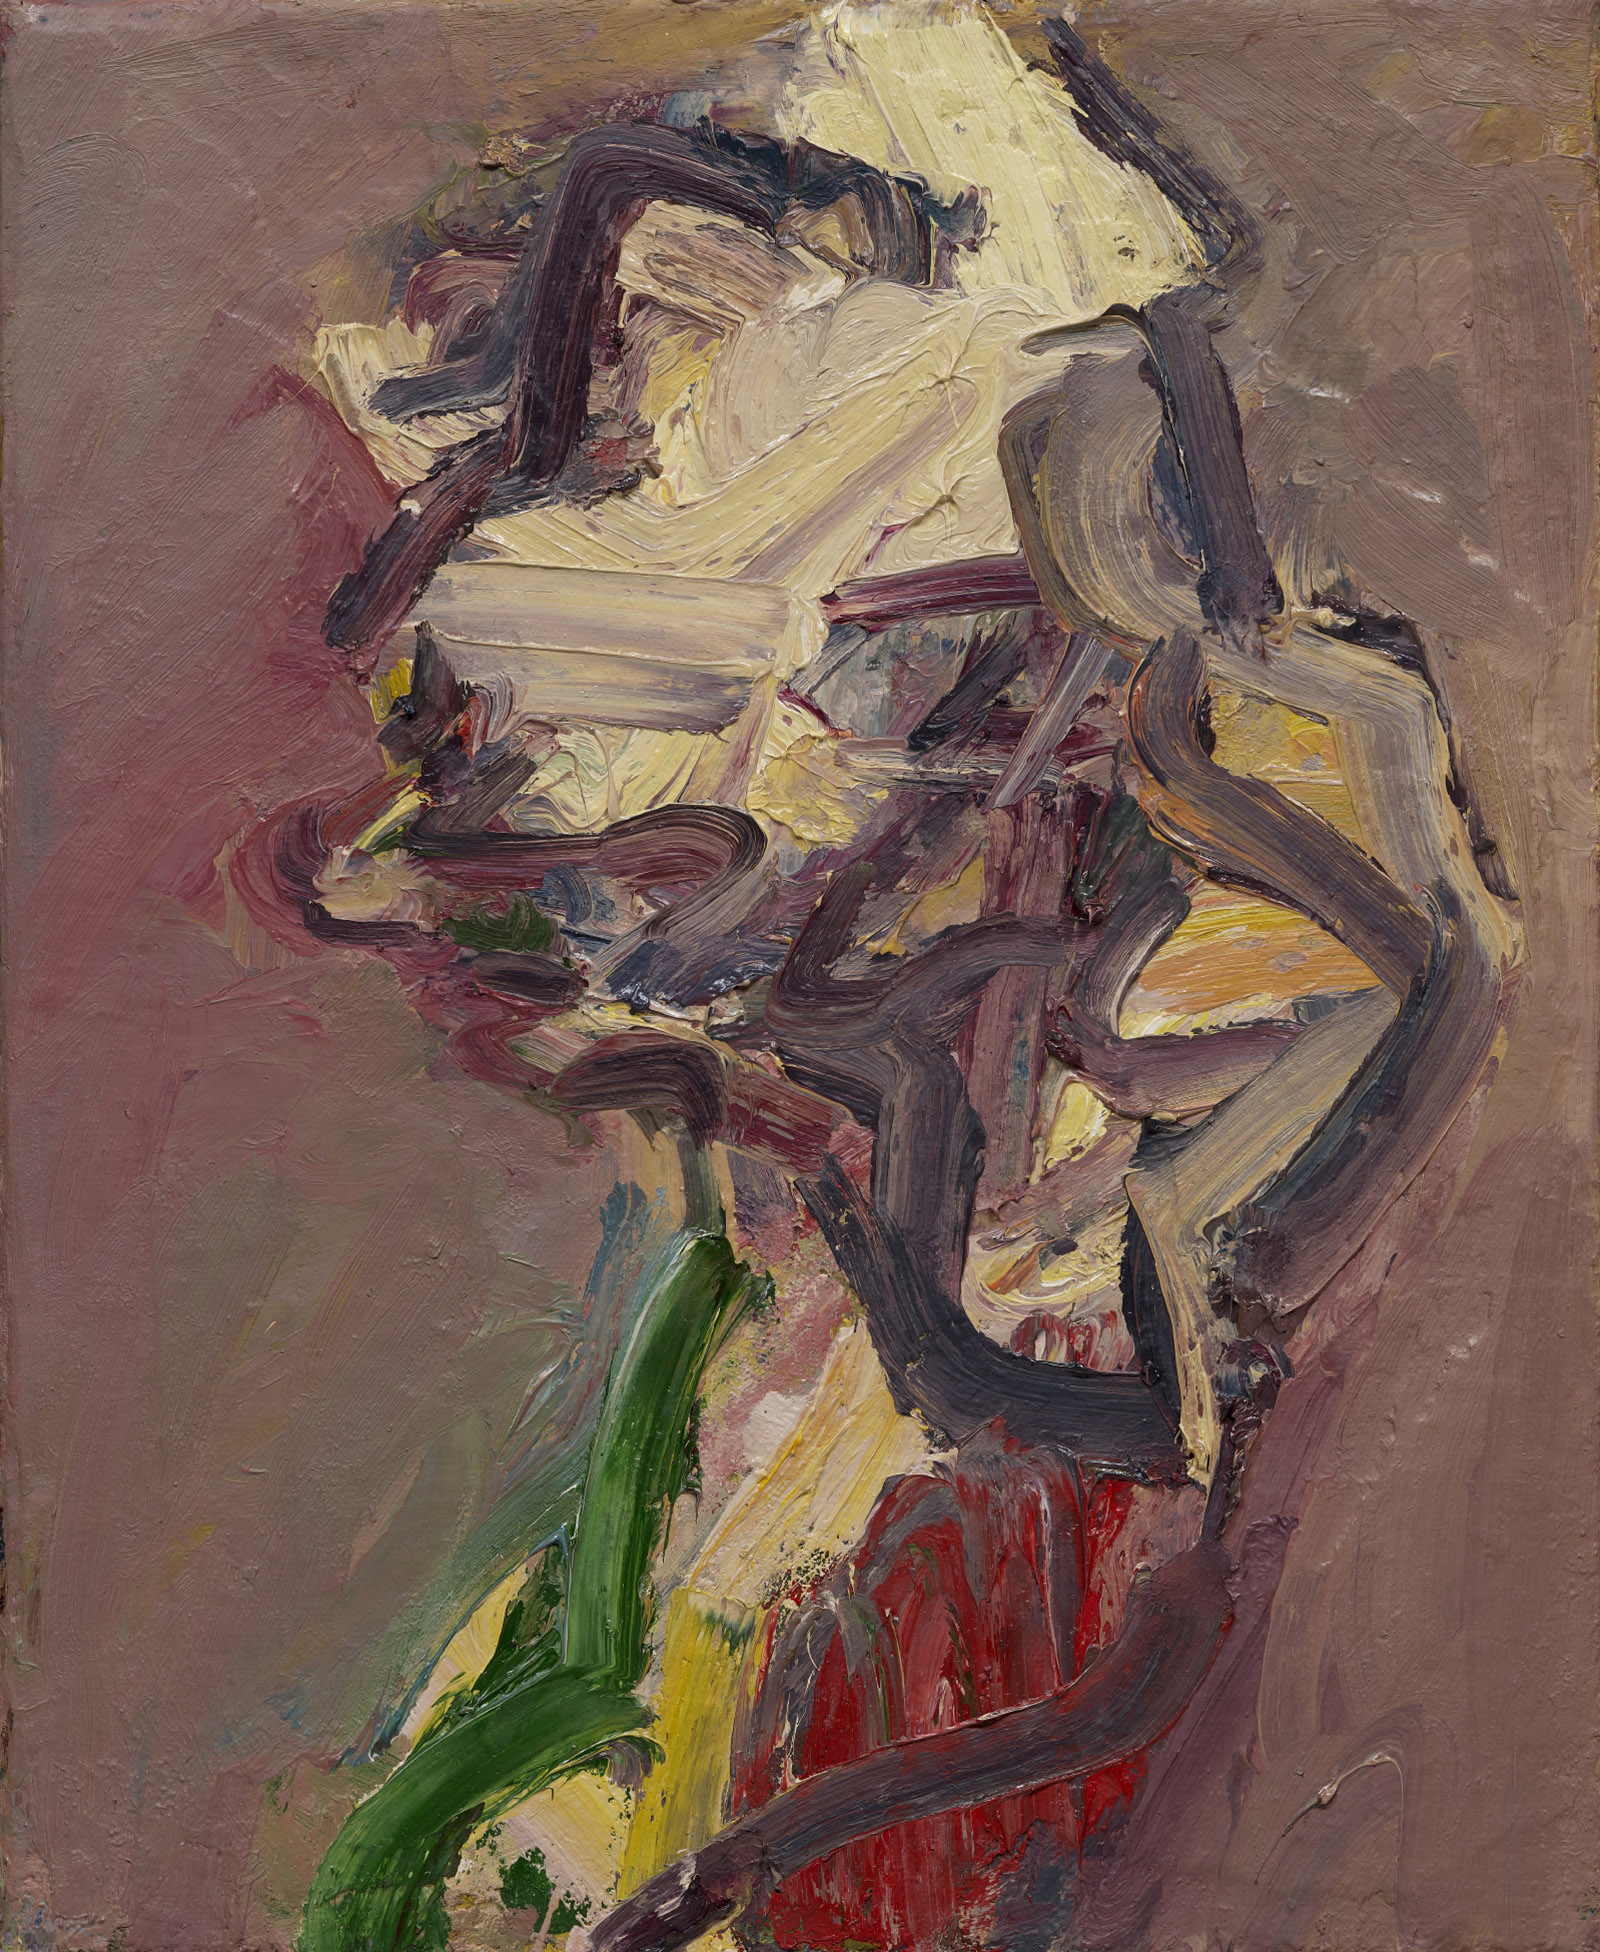 Catherine Lampert—Profile; painting by Frank Auerbach